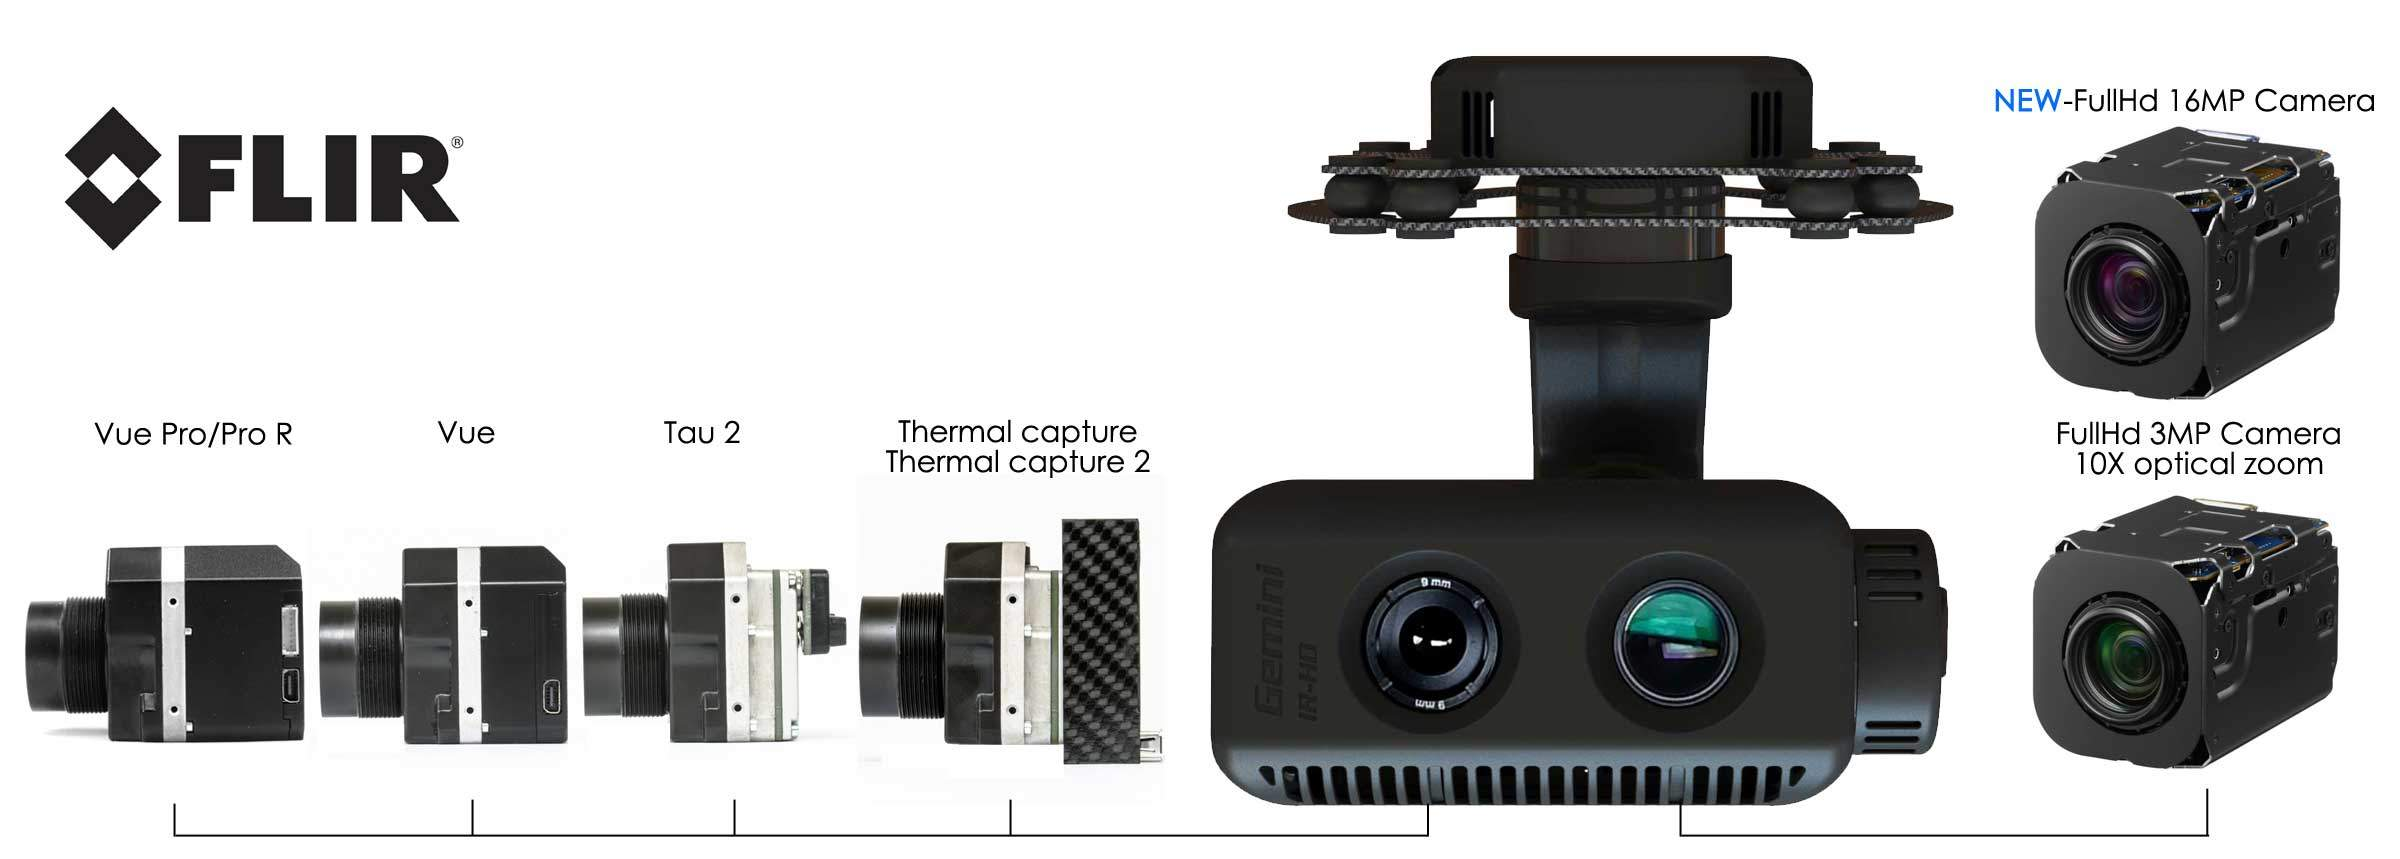 dual sensor ir eo gimbal flir thermal camera gimbal per droni with hd zoom camera onboard 16mp